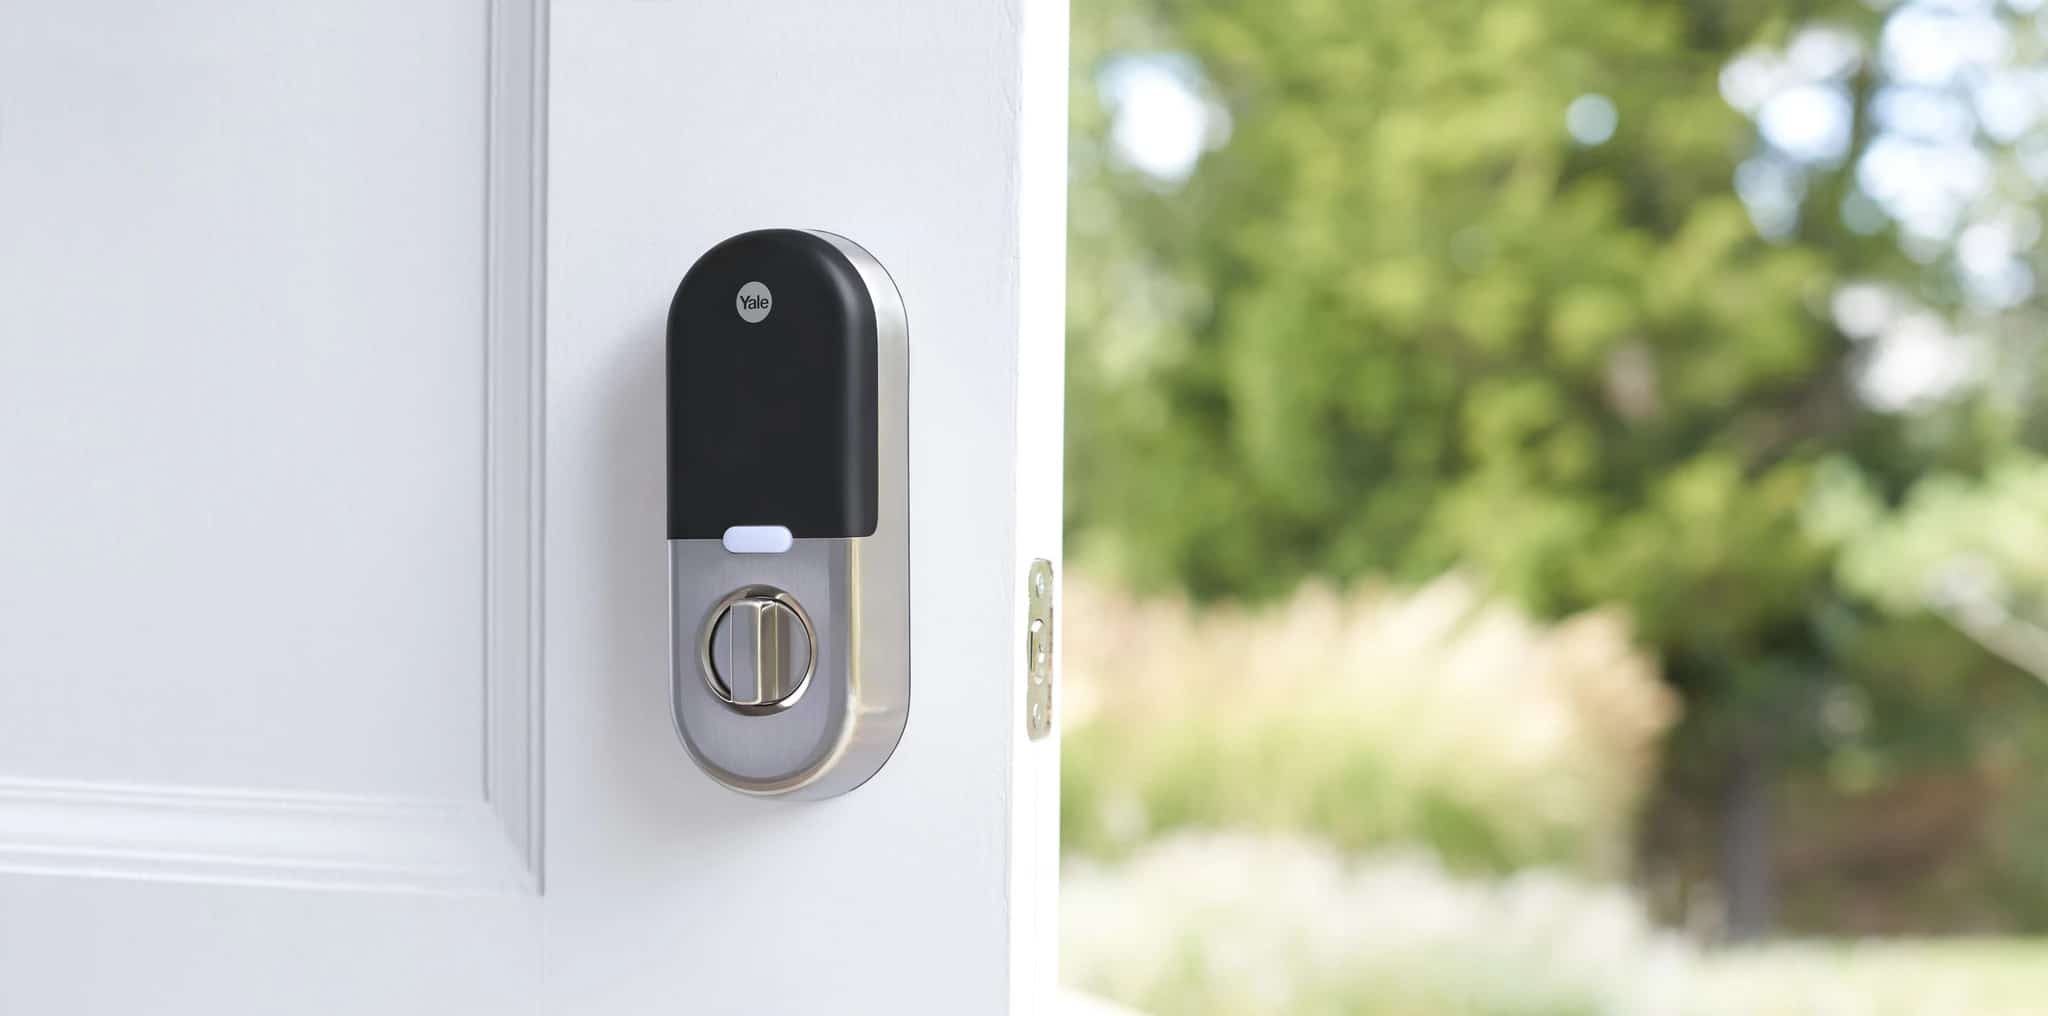 Best Smart Locks for Airbnb